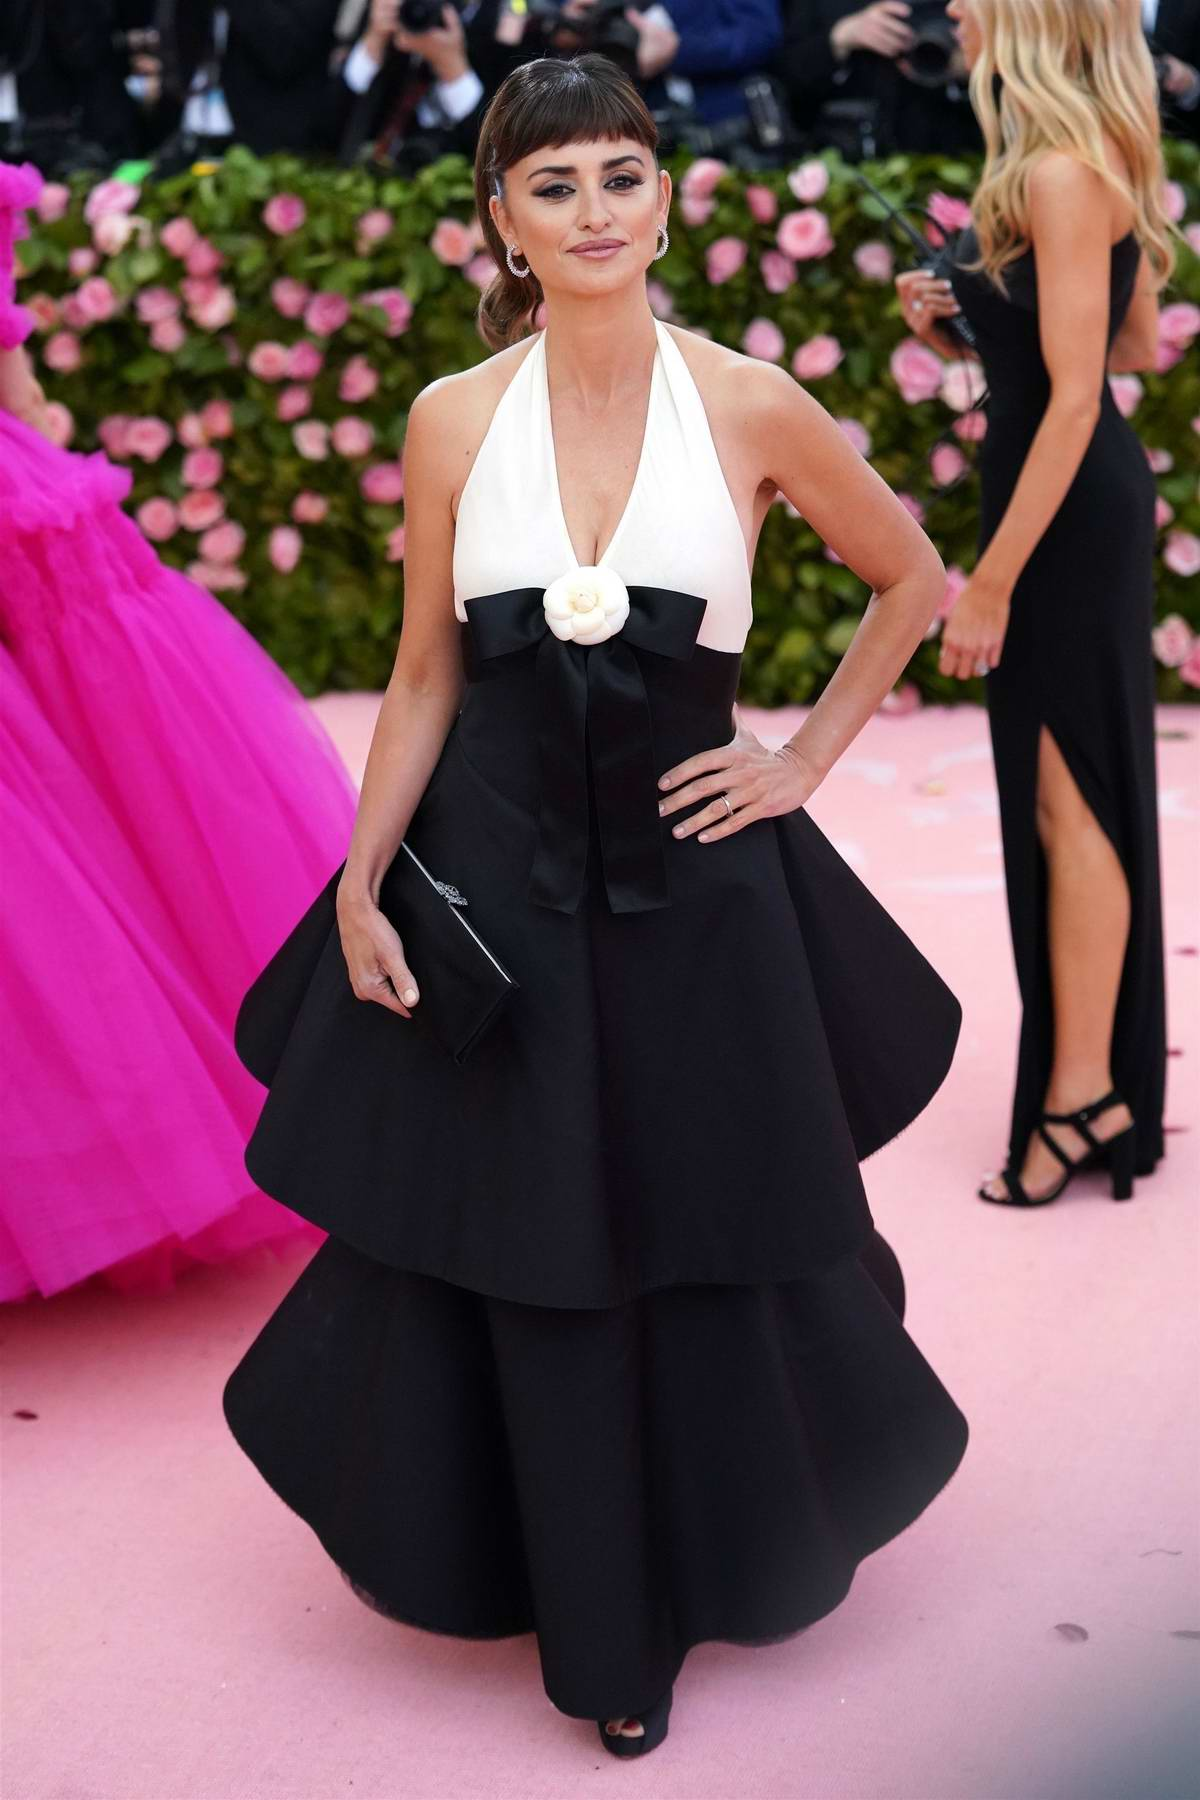 Penelope Cruz attends The 2019 Met Gala Celebrating Camp: Notes on Fashion in New York CityPenelope Cruz attends The 2019 Met Gala Celebrating Camp: Notes on Fashion in New York City